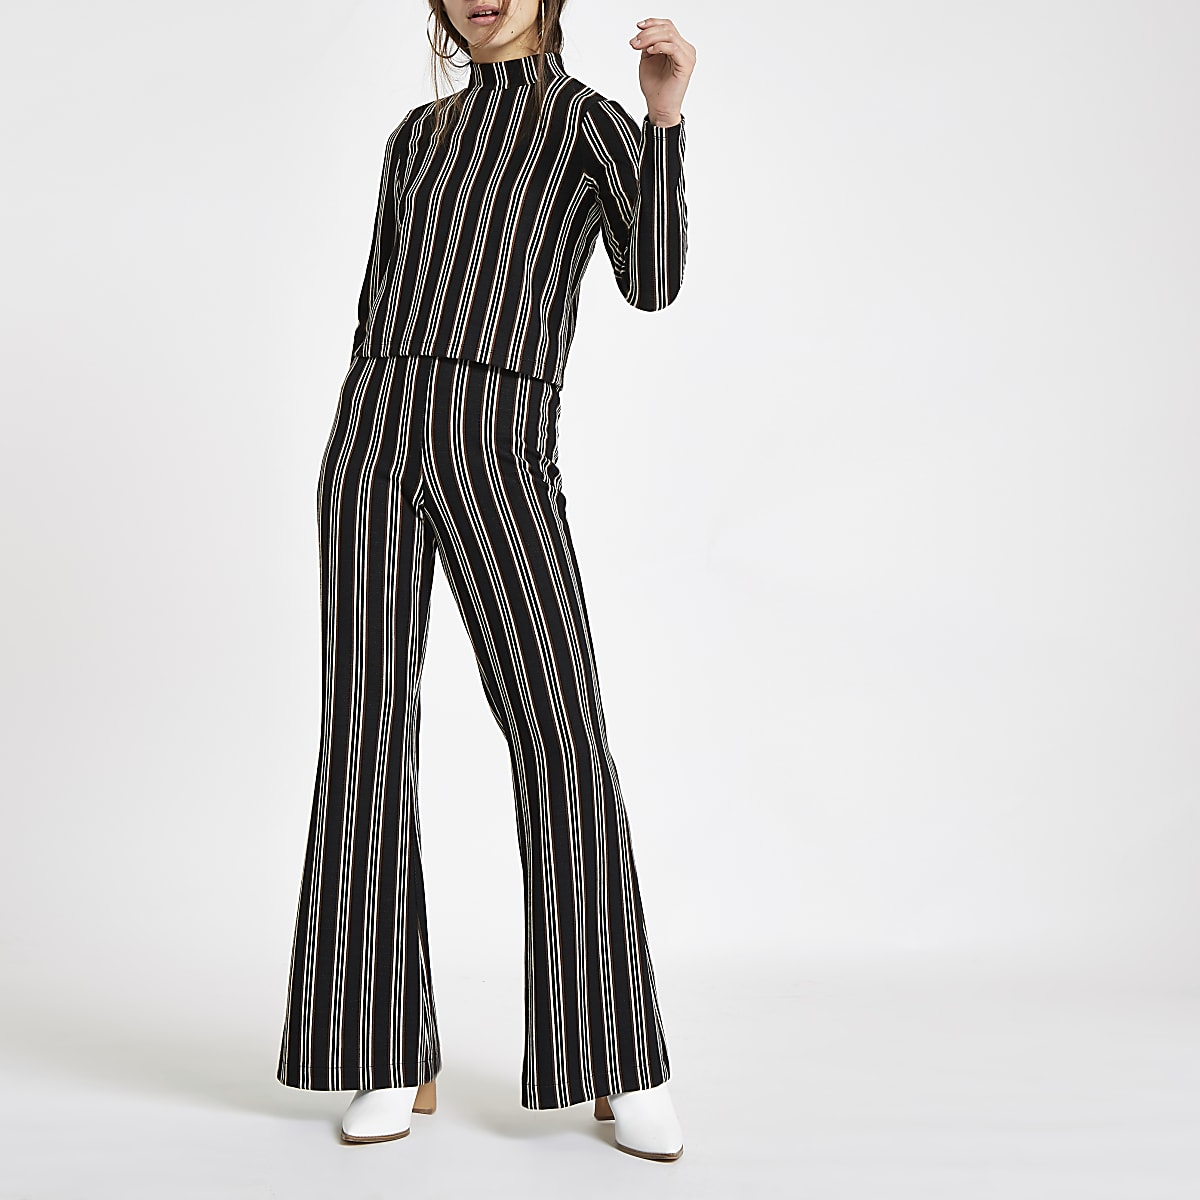 Petite black stripe wide leg trousers